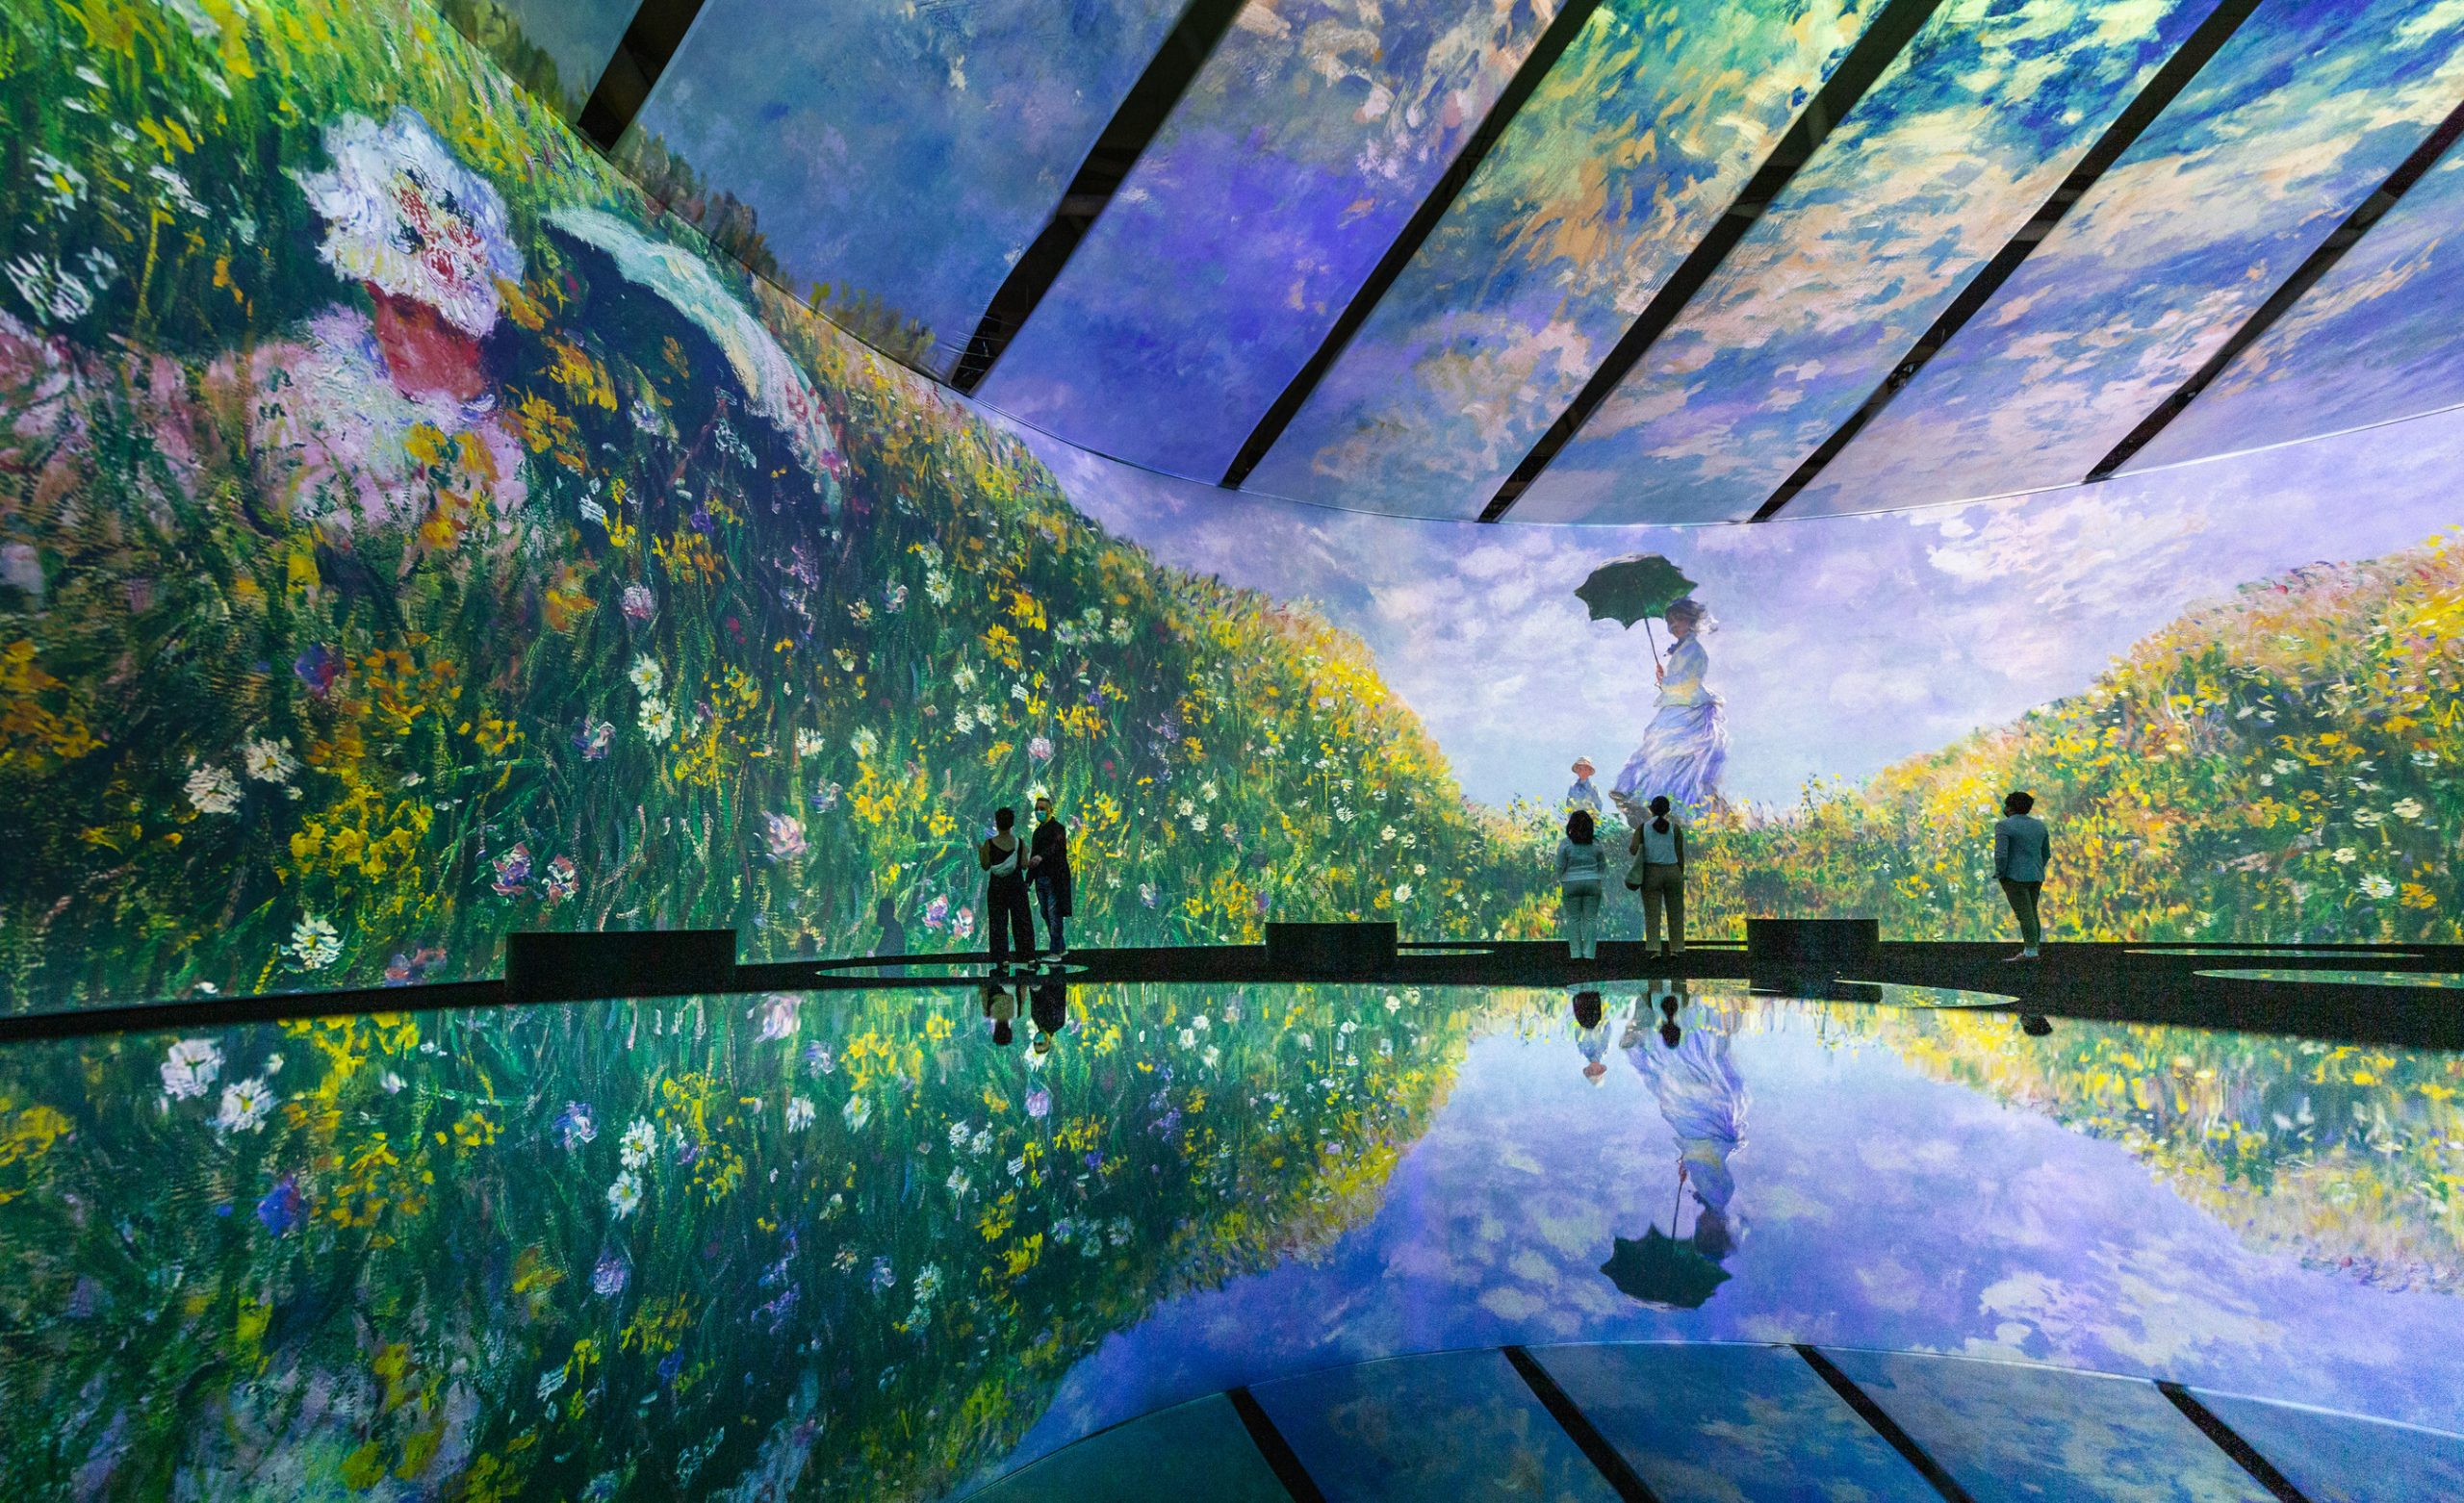 Sick of Immersive Van Gogh Already? Three Separate Companies Are Launching Competing Immersive Monet Experiences | Artnet News